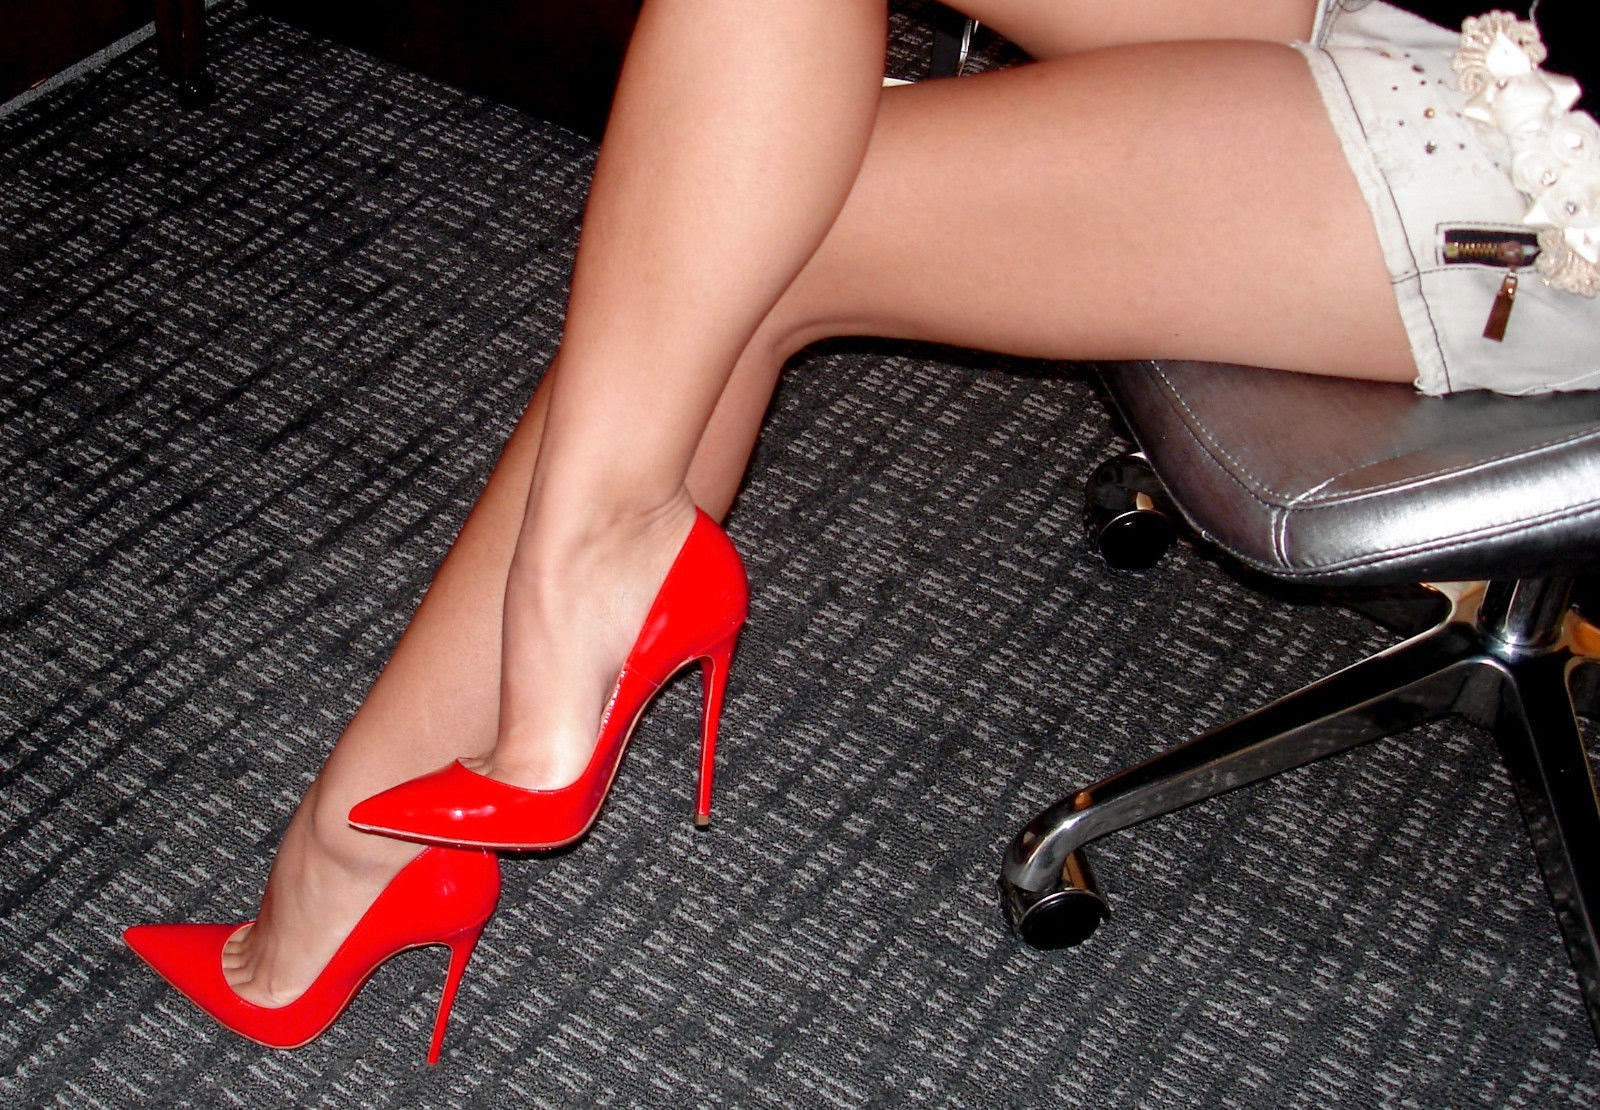 high heel shoe sexy leg pictures jpg 1200x900